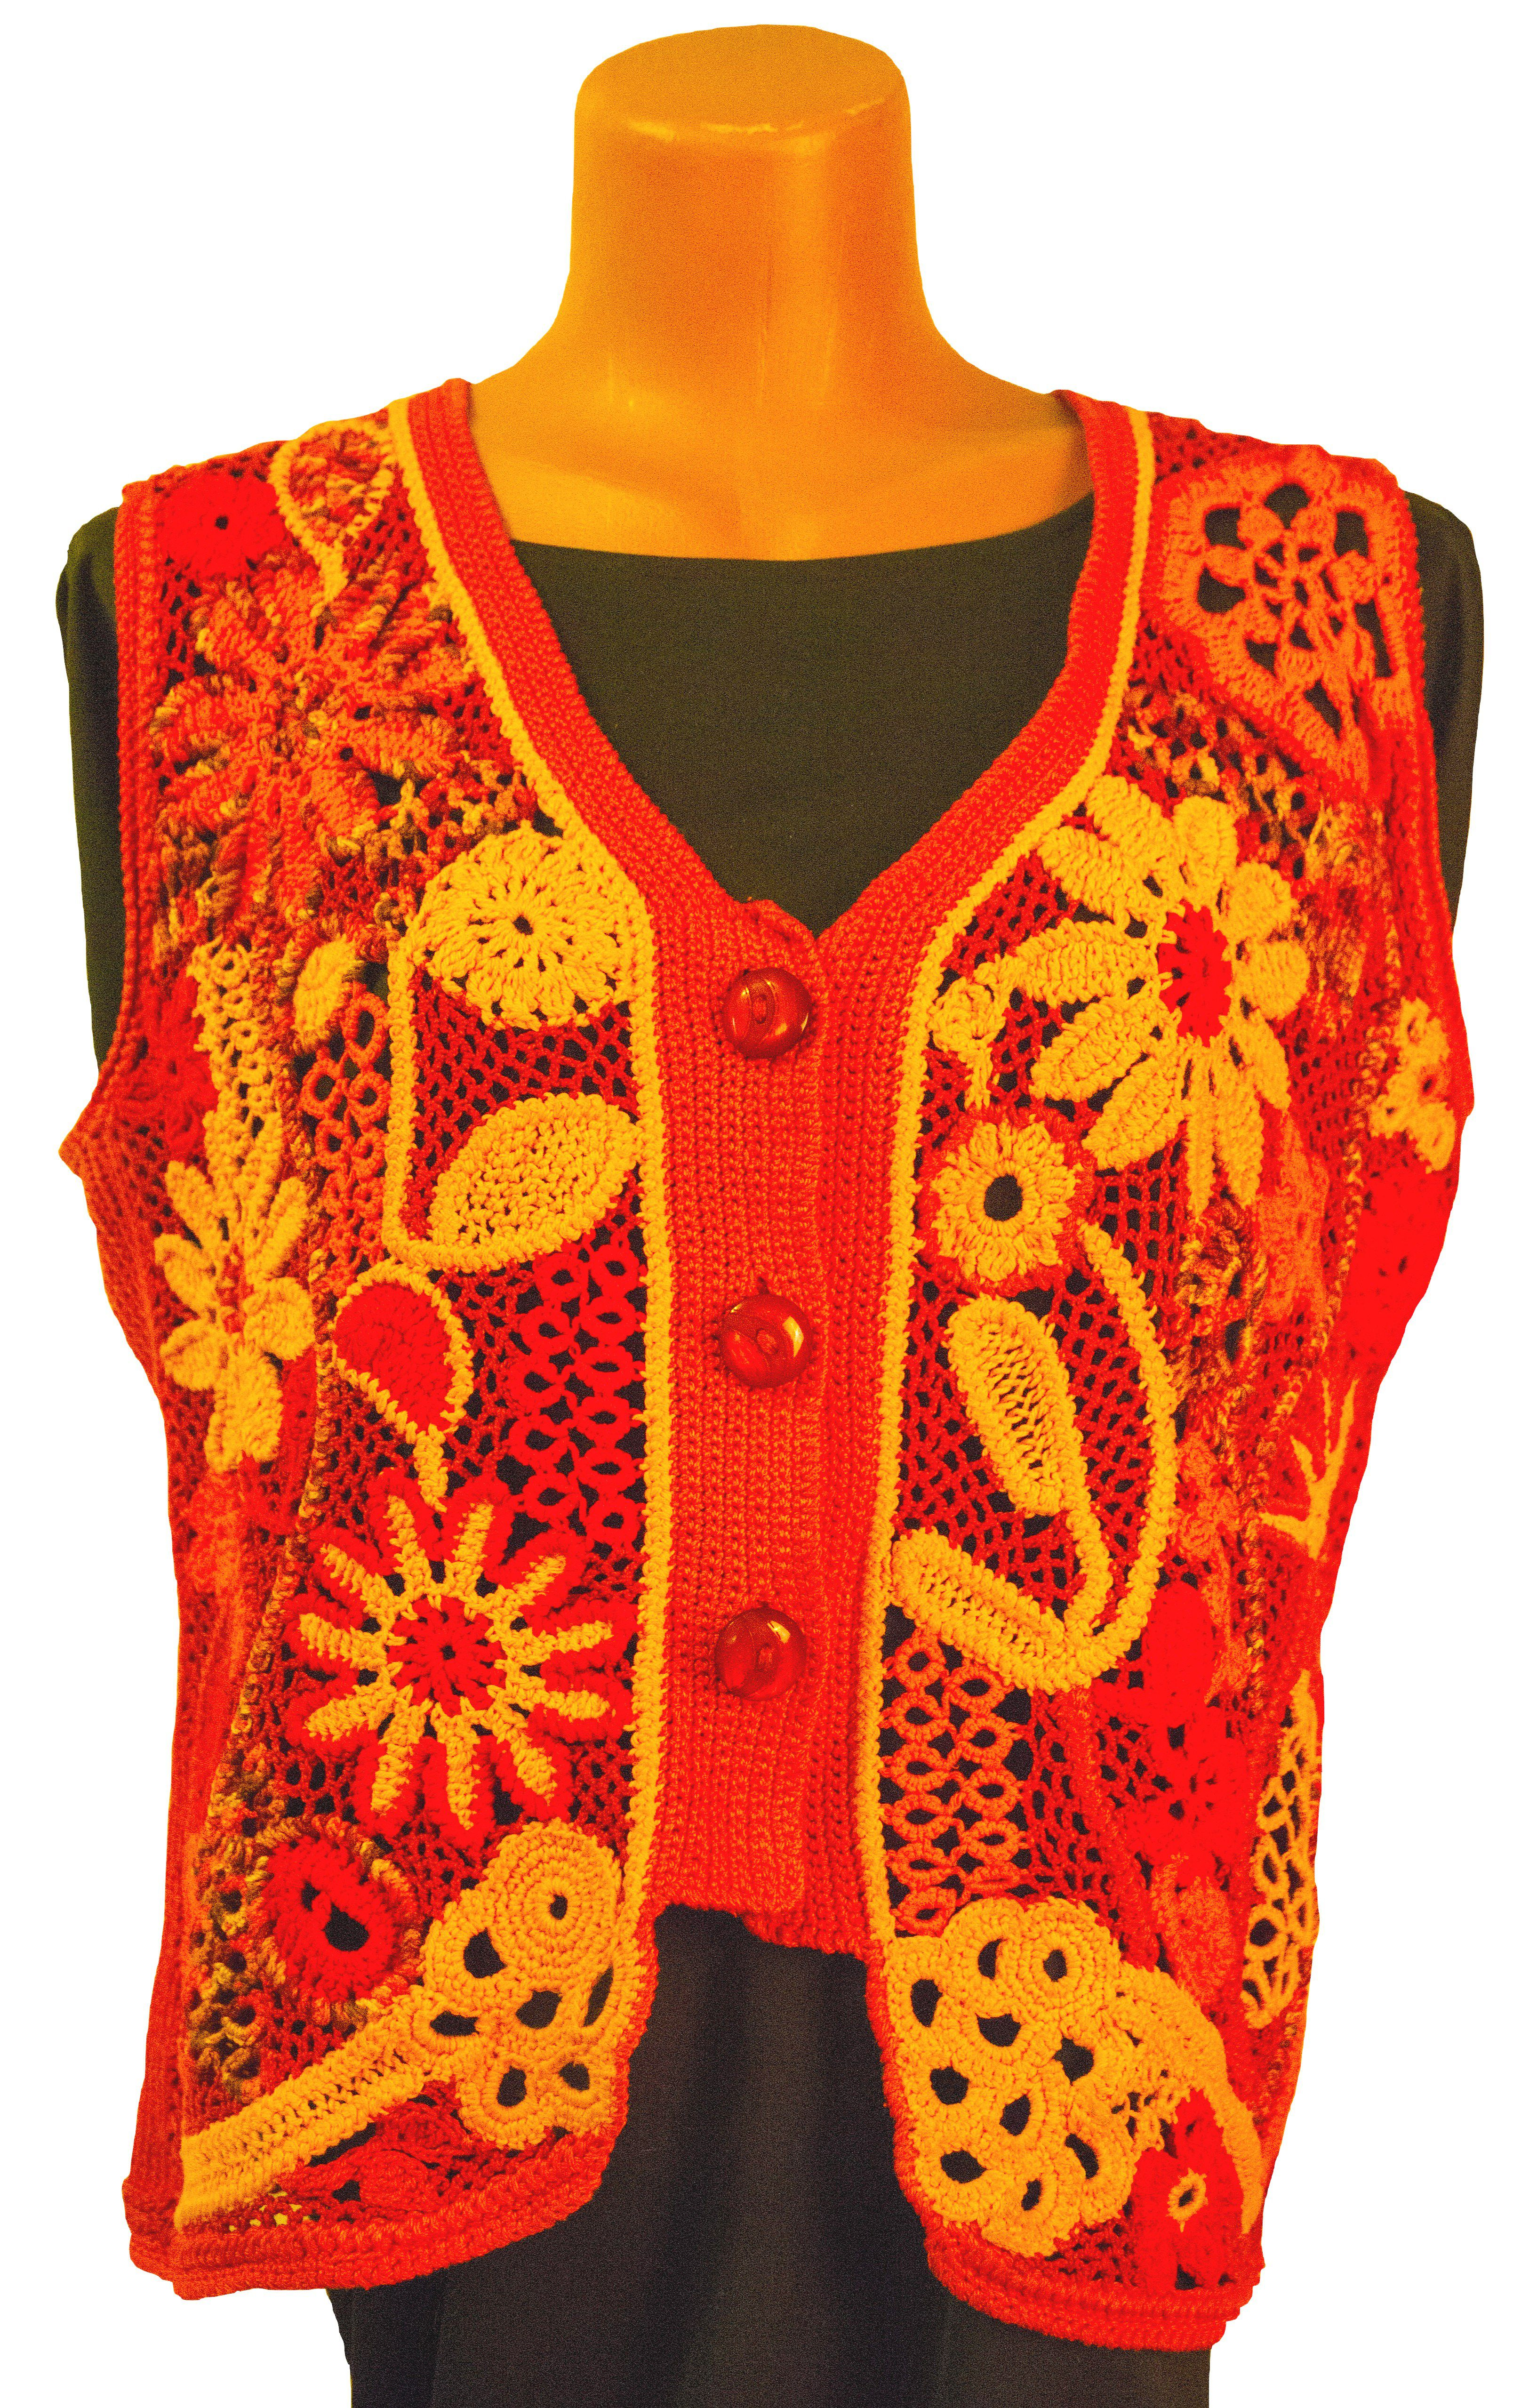 waistcoat clothes knitting red